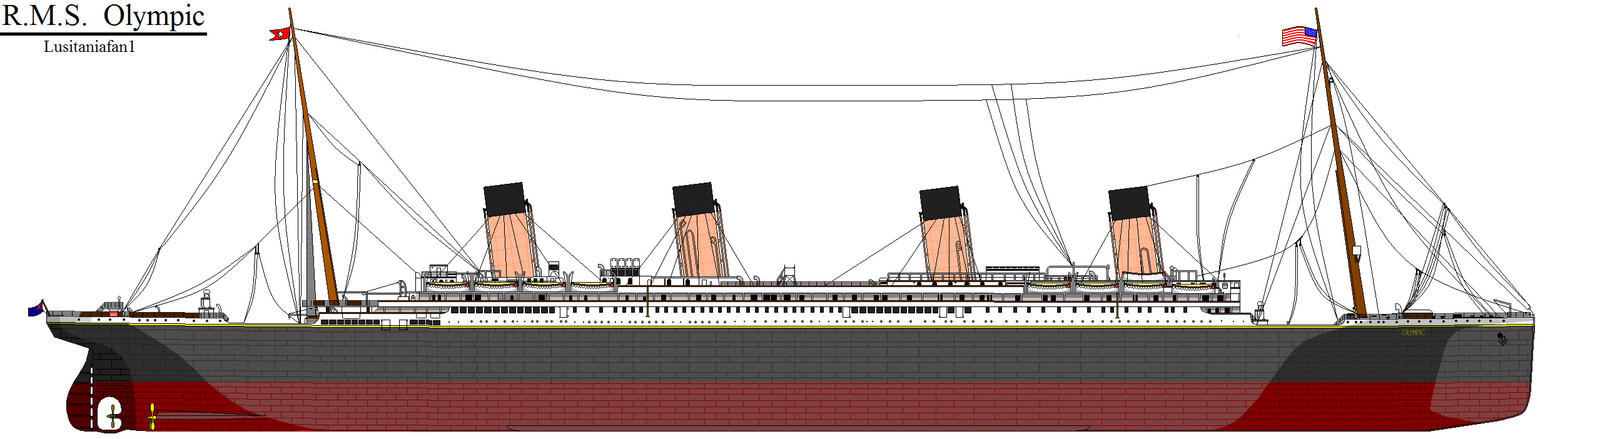 RMS Olympic By Lusitaniafan1 On DeviantArt